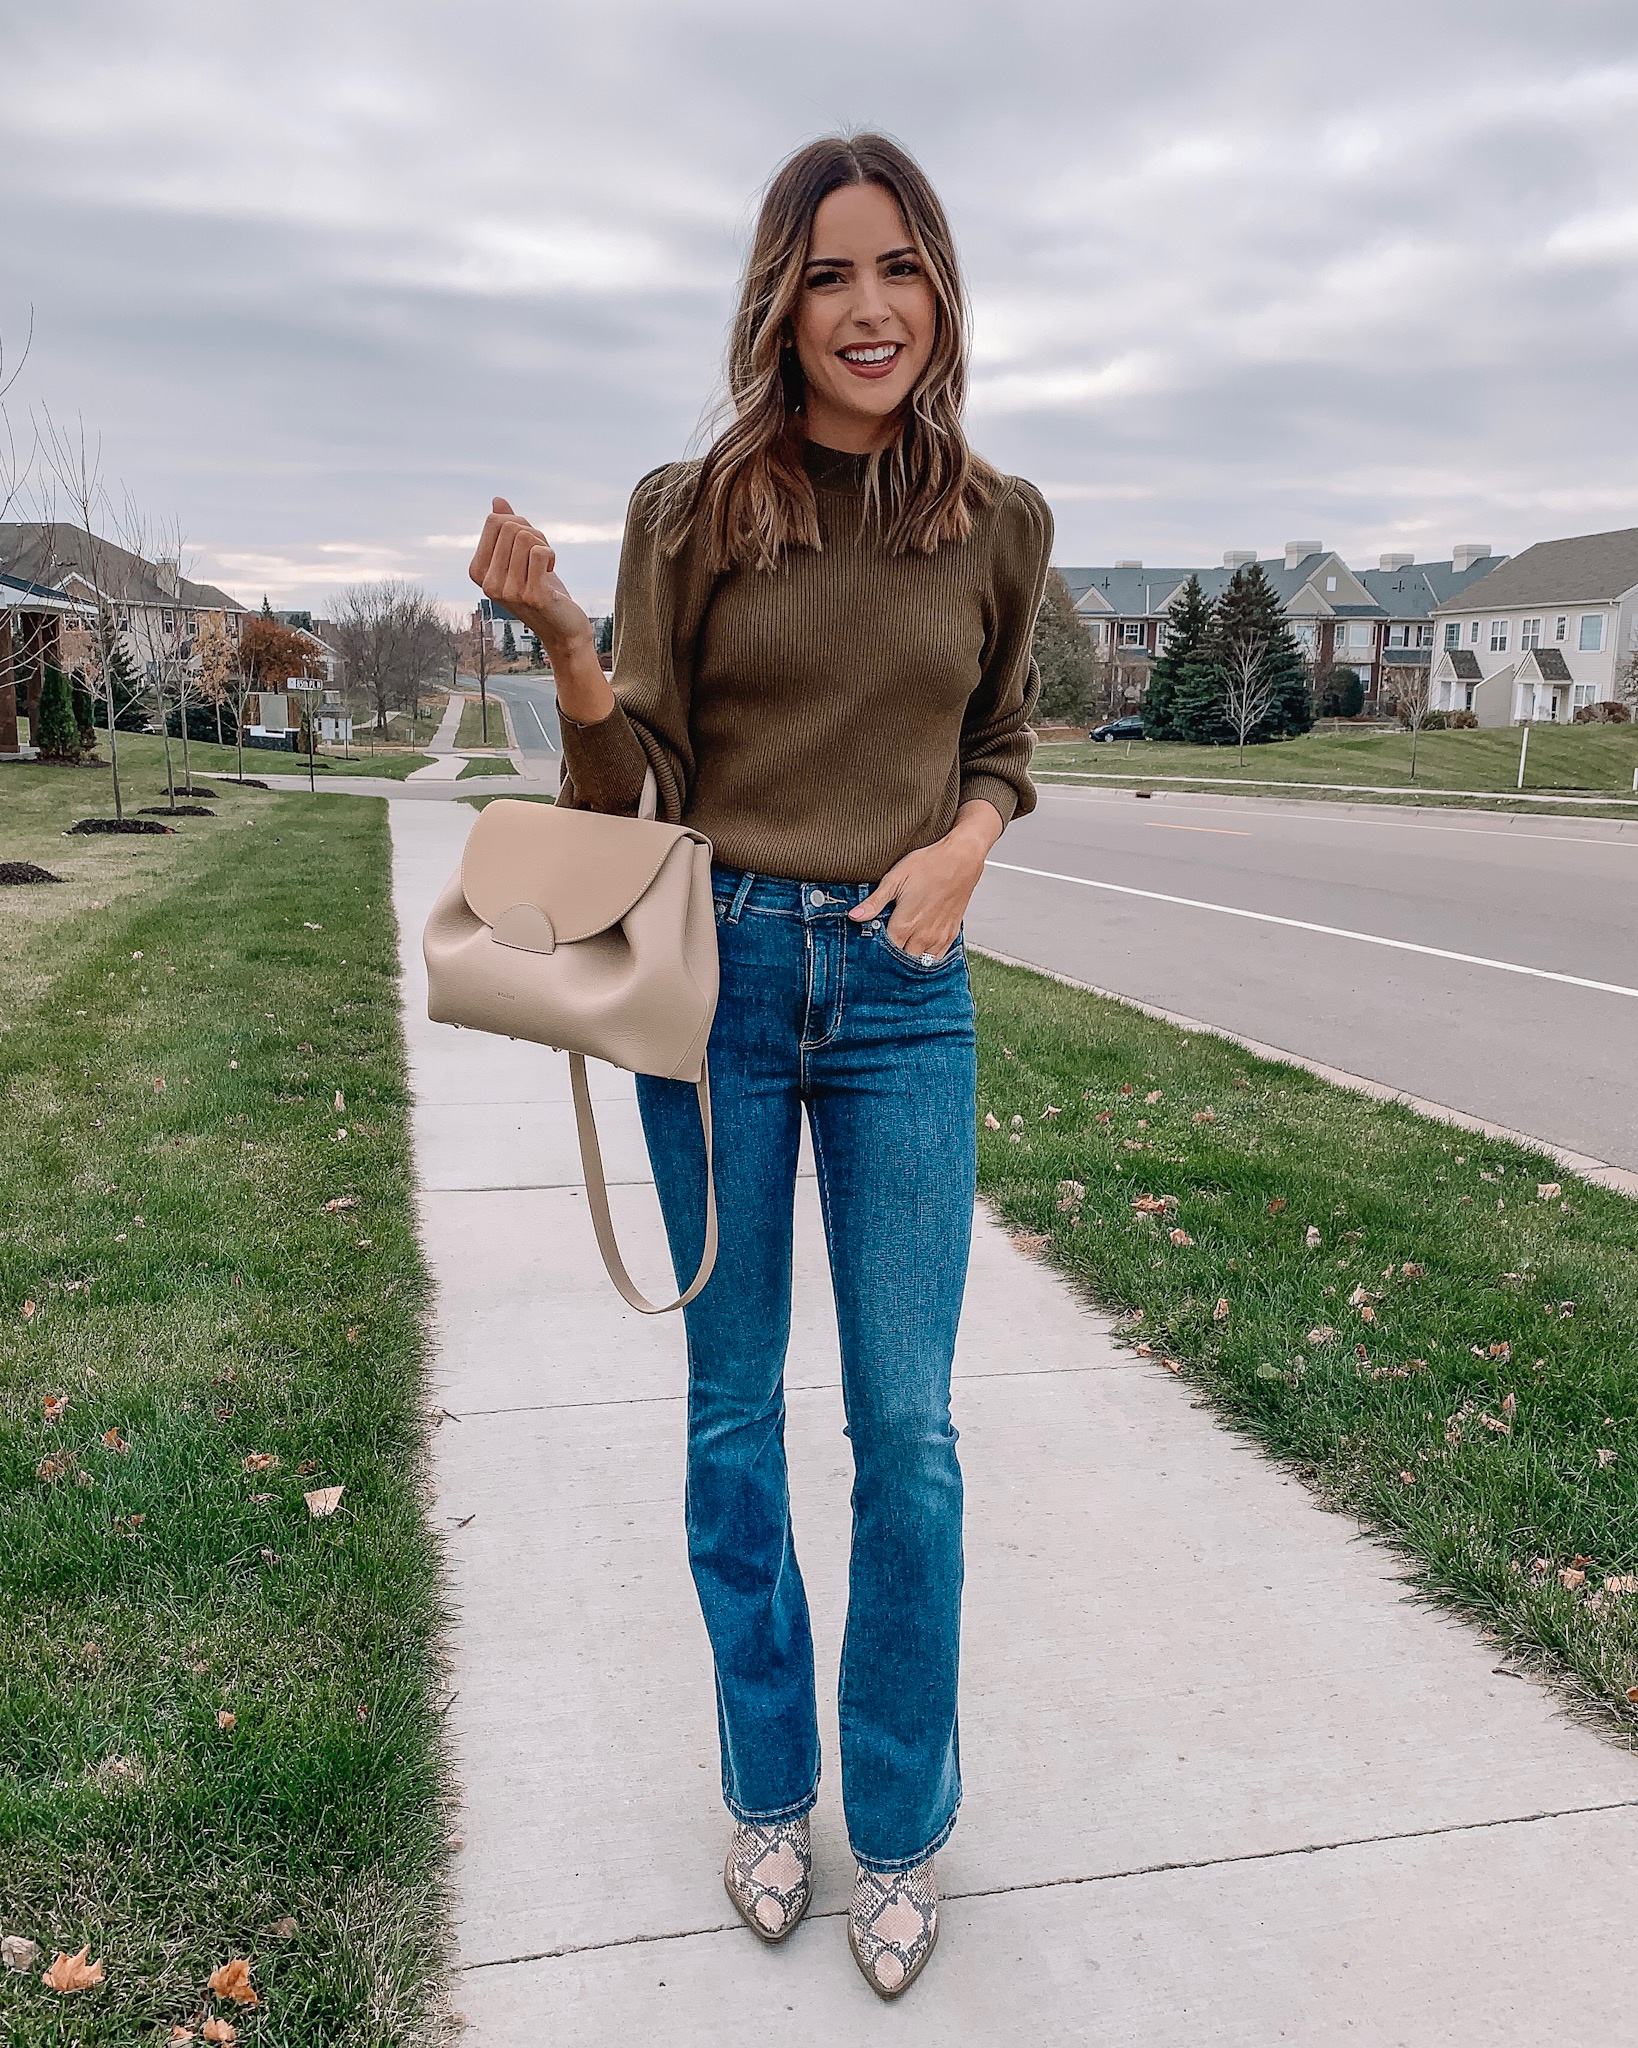 banana republic, women's outfit, workwear, casual chic outfit, flare jeans, fall fashion